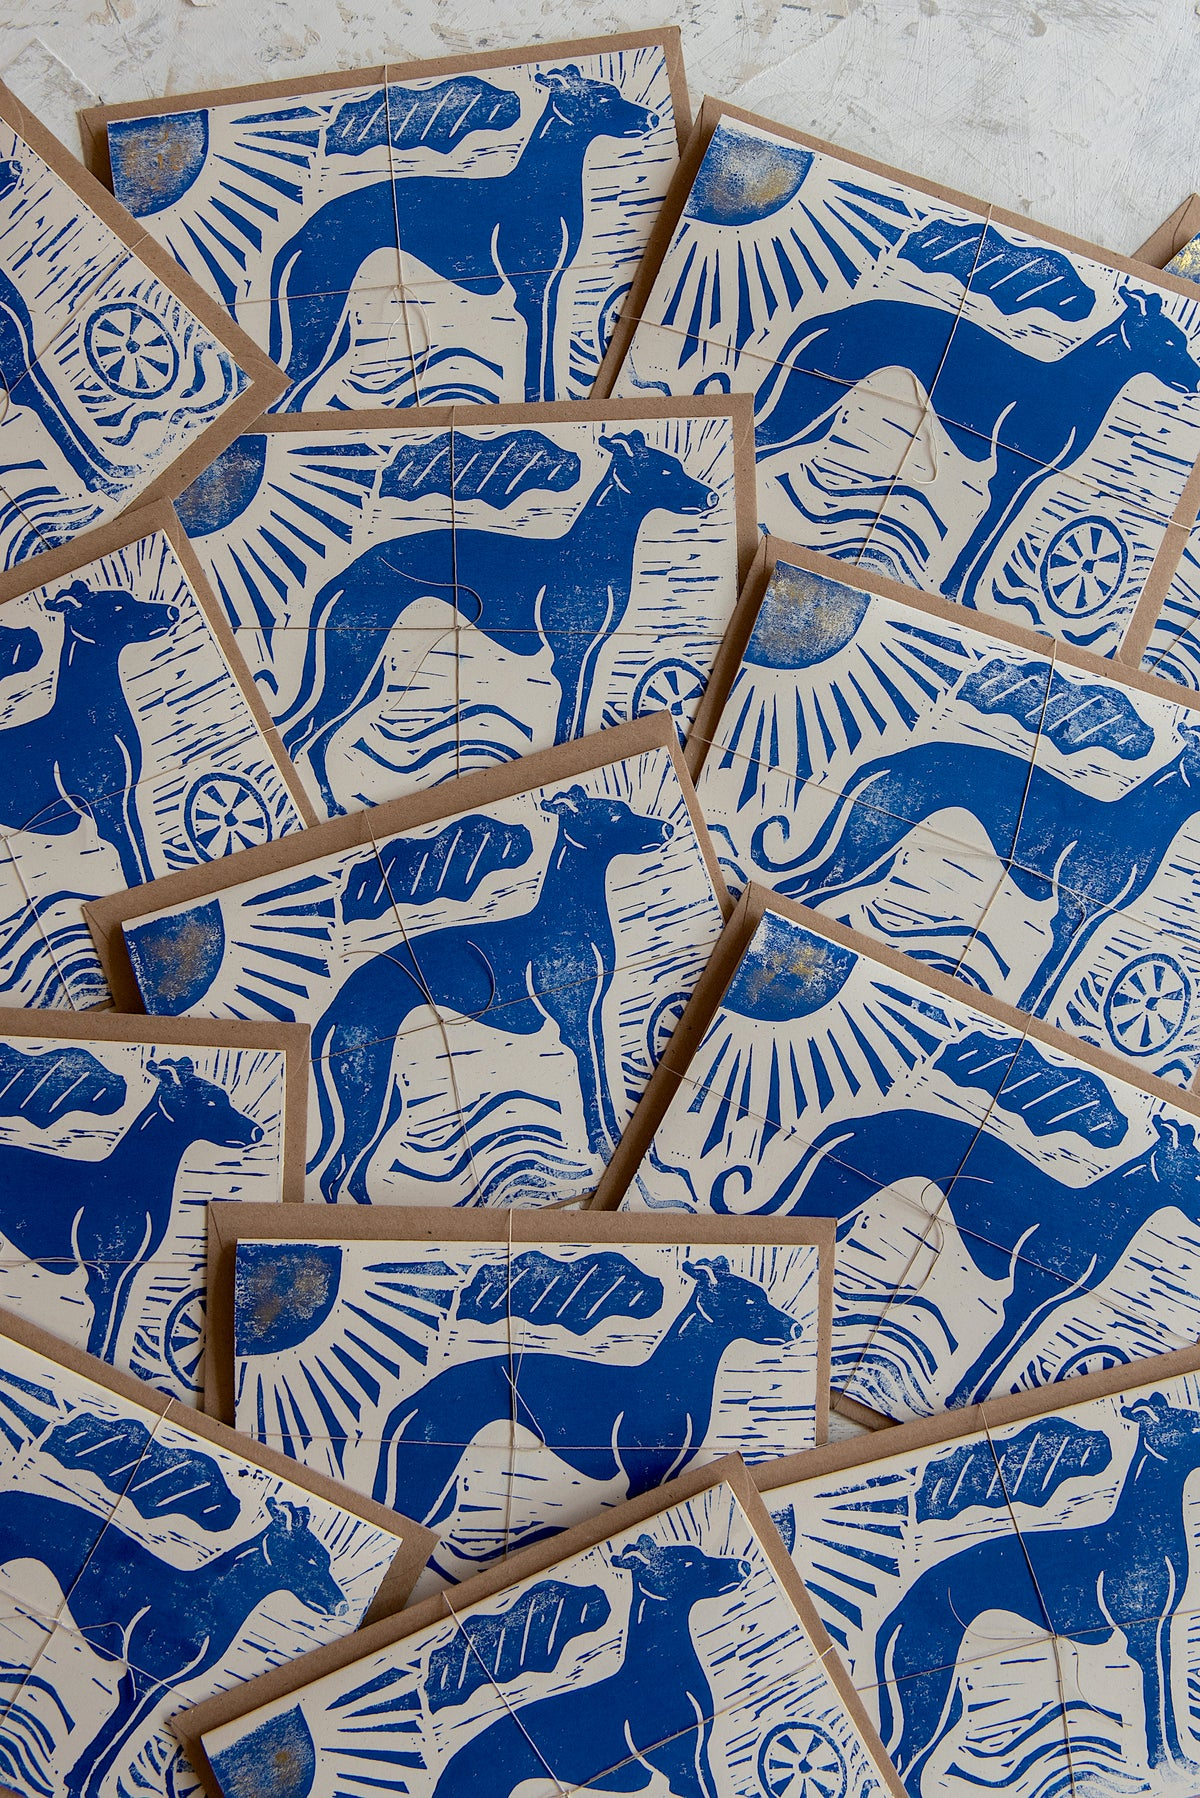 Image of 'Whippet' hand block printed greeting cards